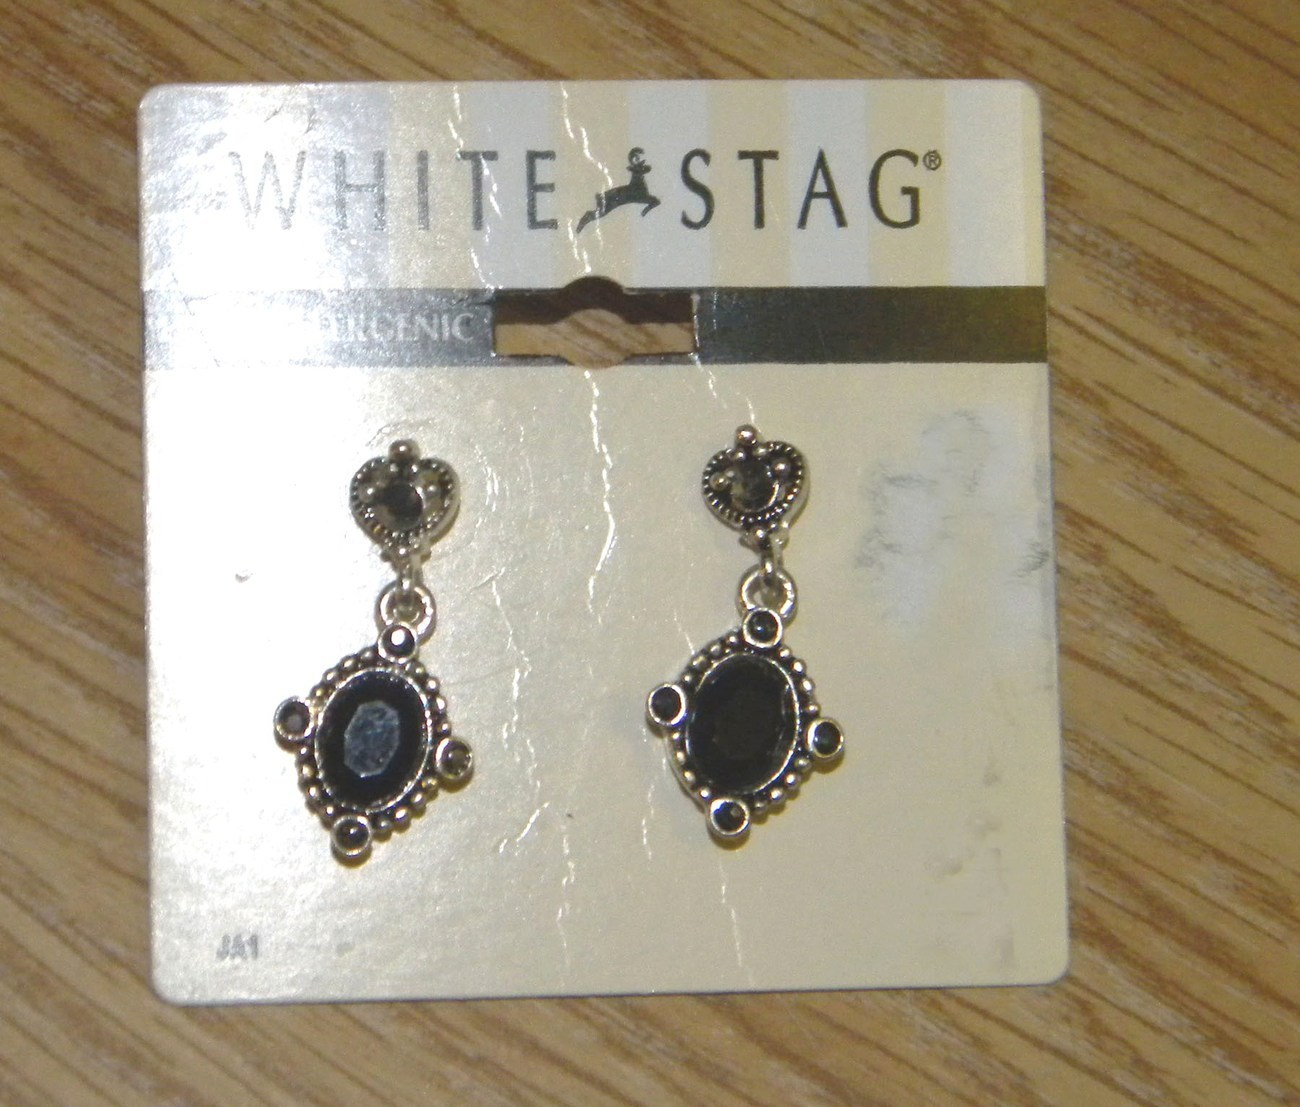 1 silver tone white stag earrings